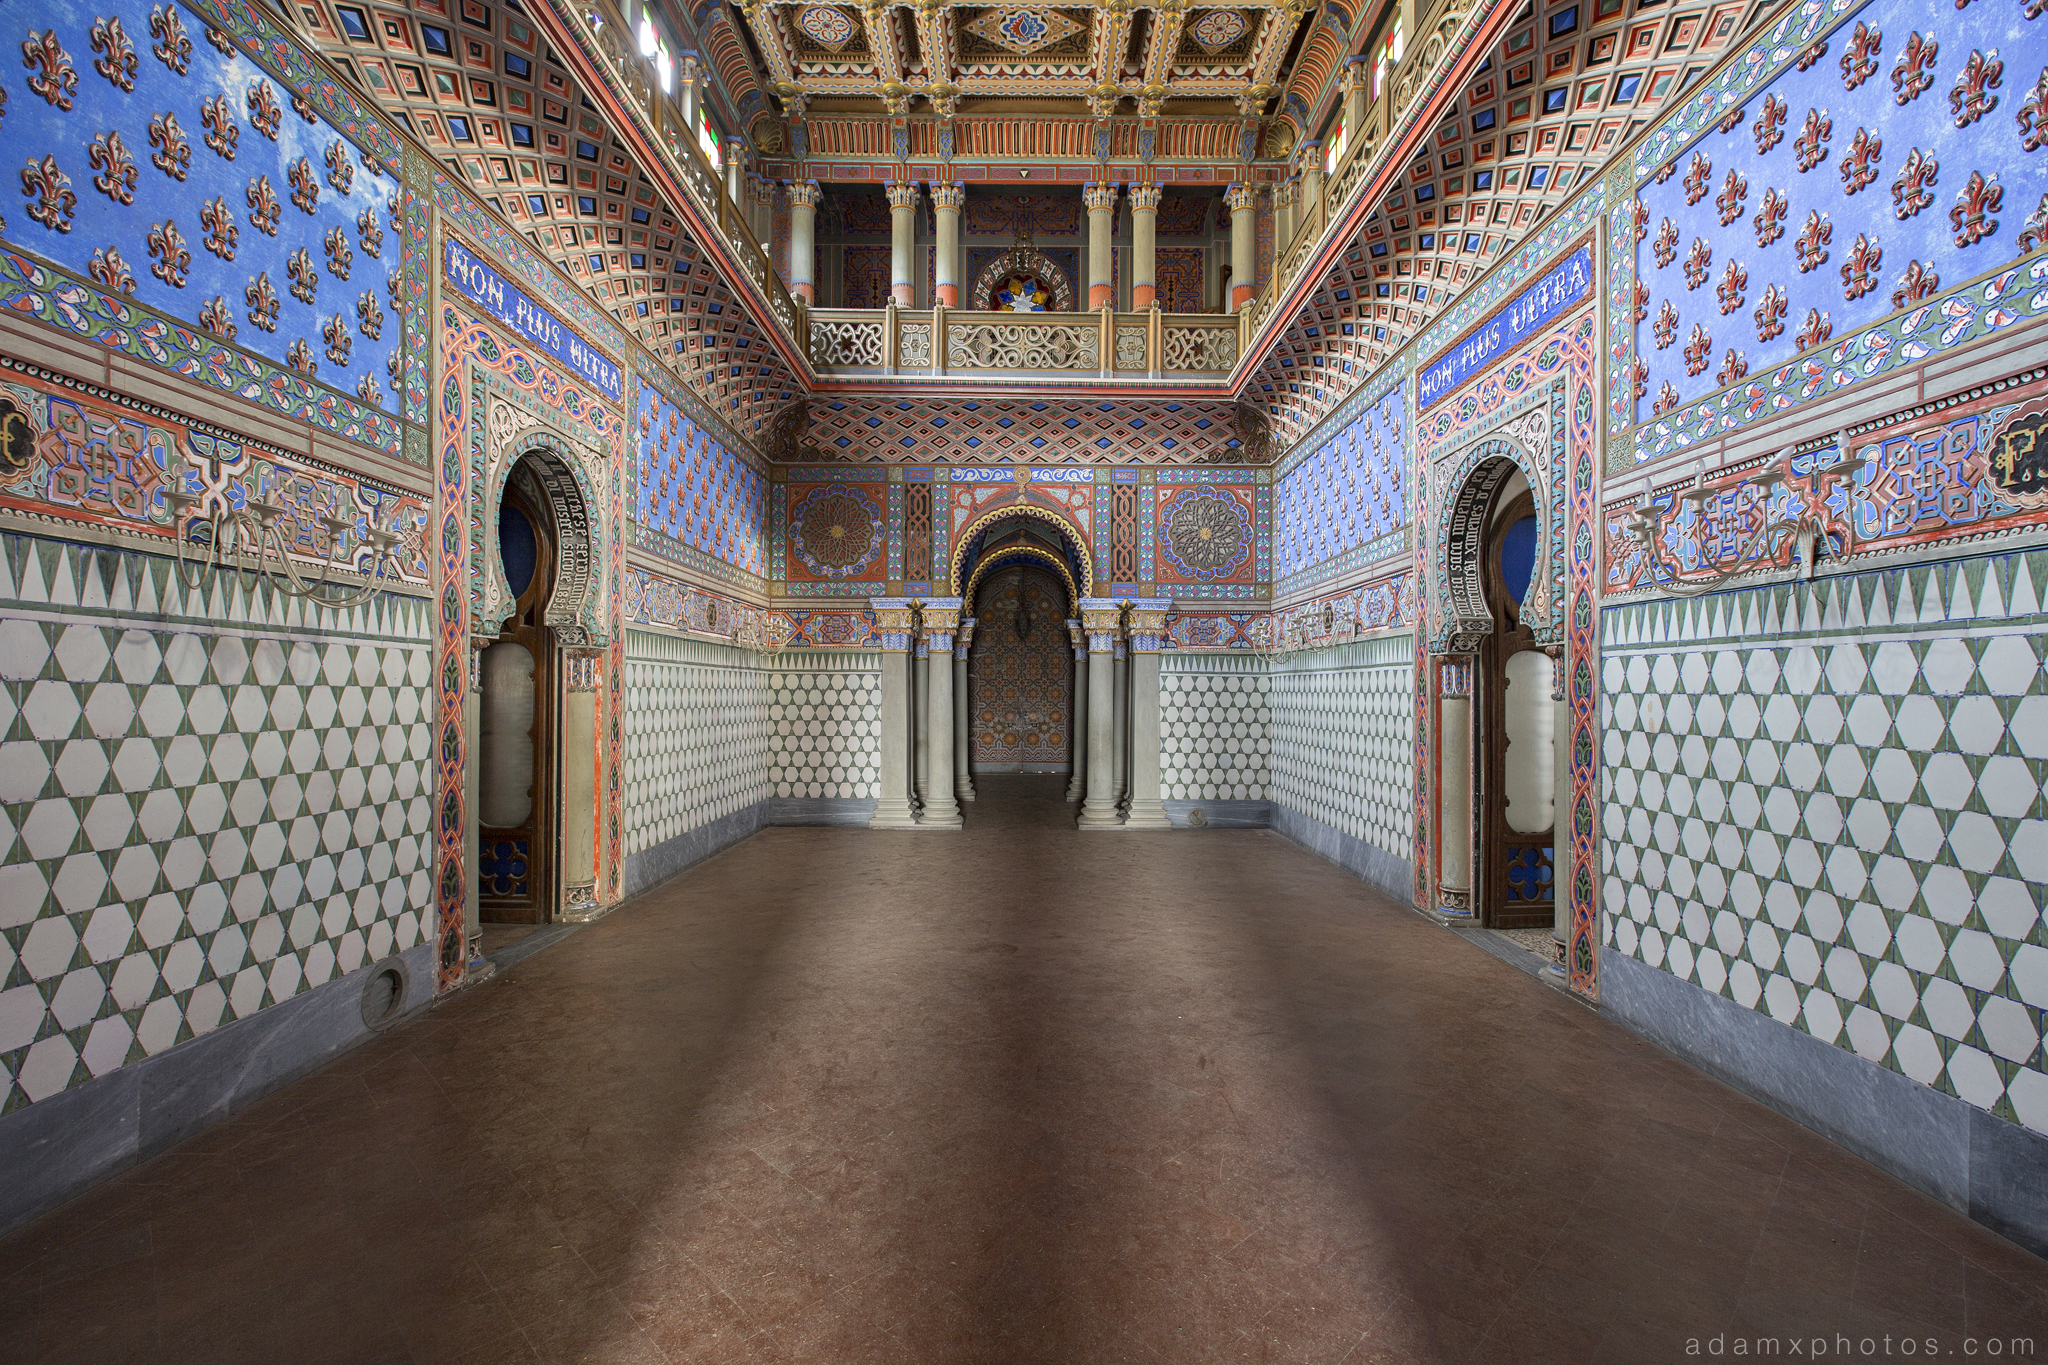 The hall of Lilies Sala dei gigli Non Plus Ultra Fairytale Castle of Sammezzano Castello di Sammezzano Urbex Adam X Urban Exploration photo photos report decay detail UE abandoned Ornate Moorish tiling tiled derelict unused empty disused decay decayed decaying grimy grime